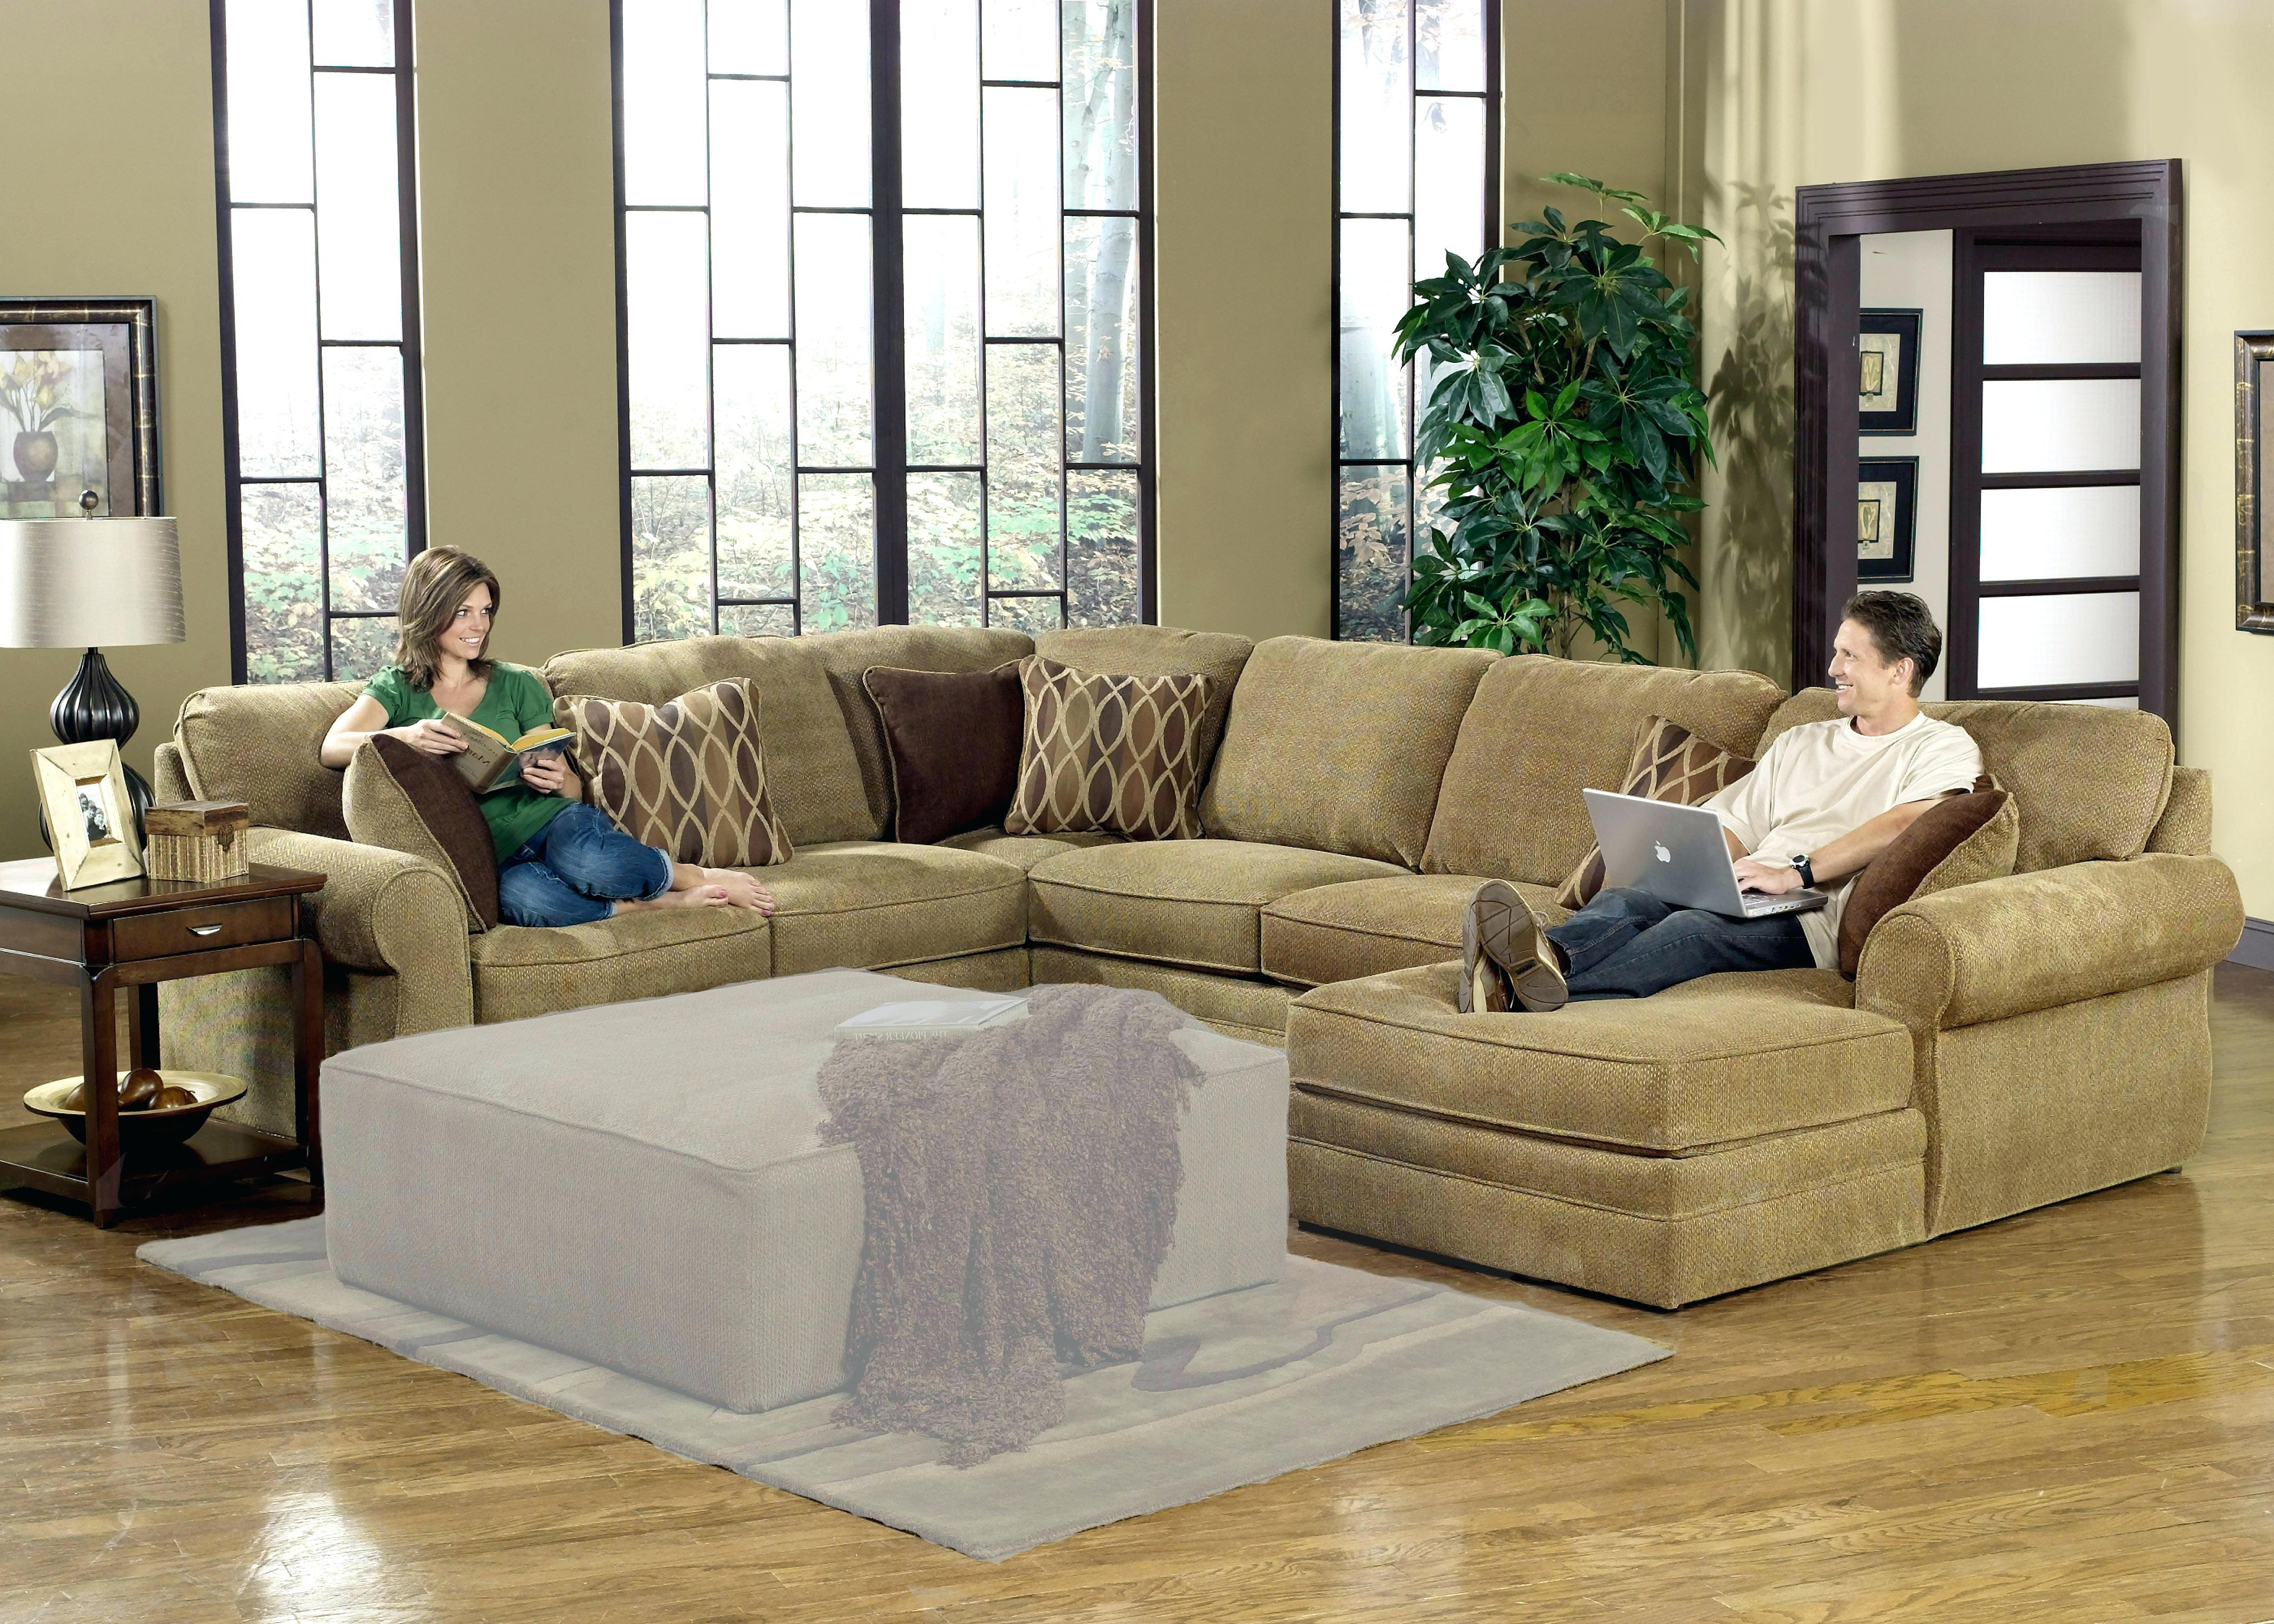 Famous U Shaped Sofa Sa For Cshis Chair Like Lips A Scorpion L Ikea Price Regarding U Shaped Sectionals (View 8 of 20)